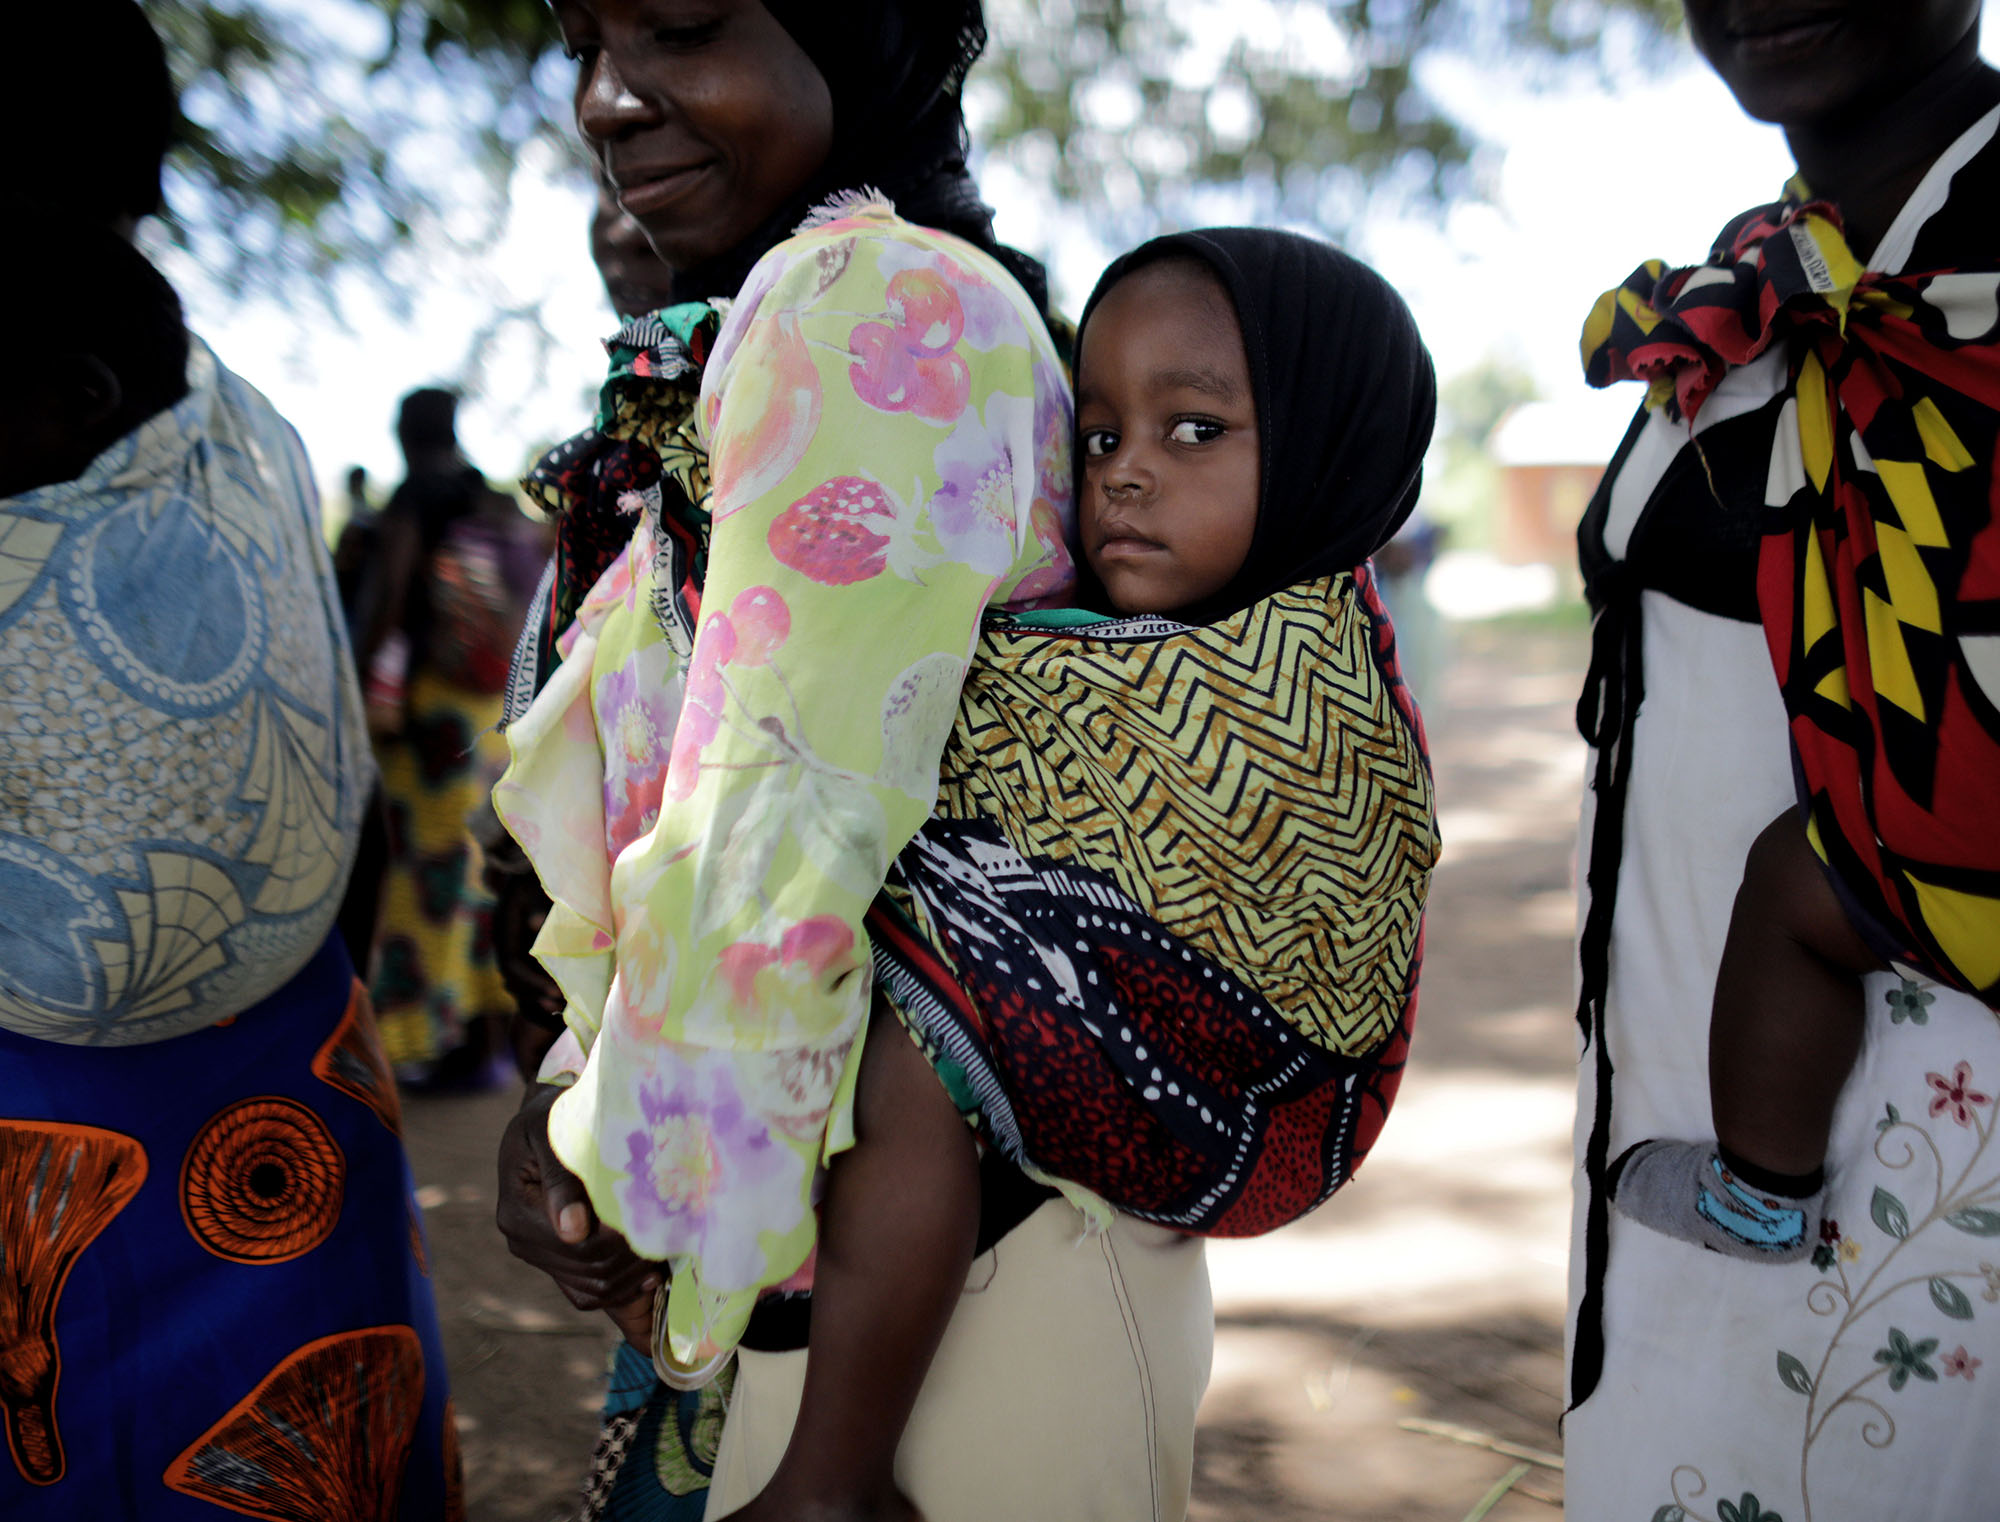 """Women began to gather under the shade of a large tree in TA Nsamala, with baby's on their backs. The program implemented by the government and supported by UNICEF is part of the """"improvement of nutritional and health situation for children under 5, women, internally displaced persons and refugees."""" Photo by Josh Estey."""